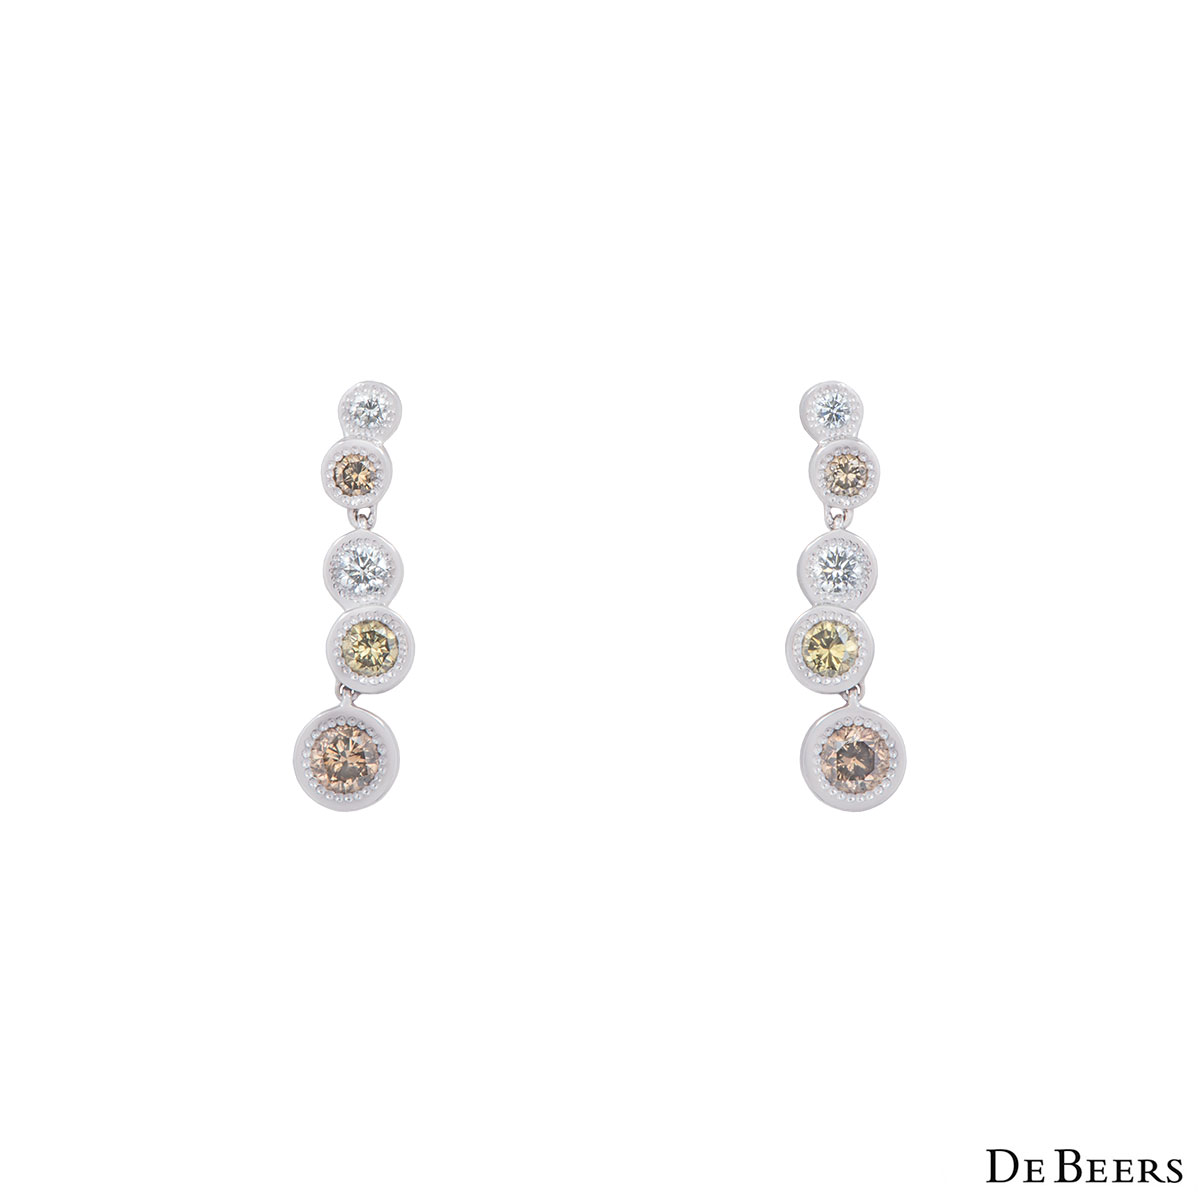 De Beers White Gold Aura Love Journey Diamond Earrings 1.48ct G+/VS+